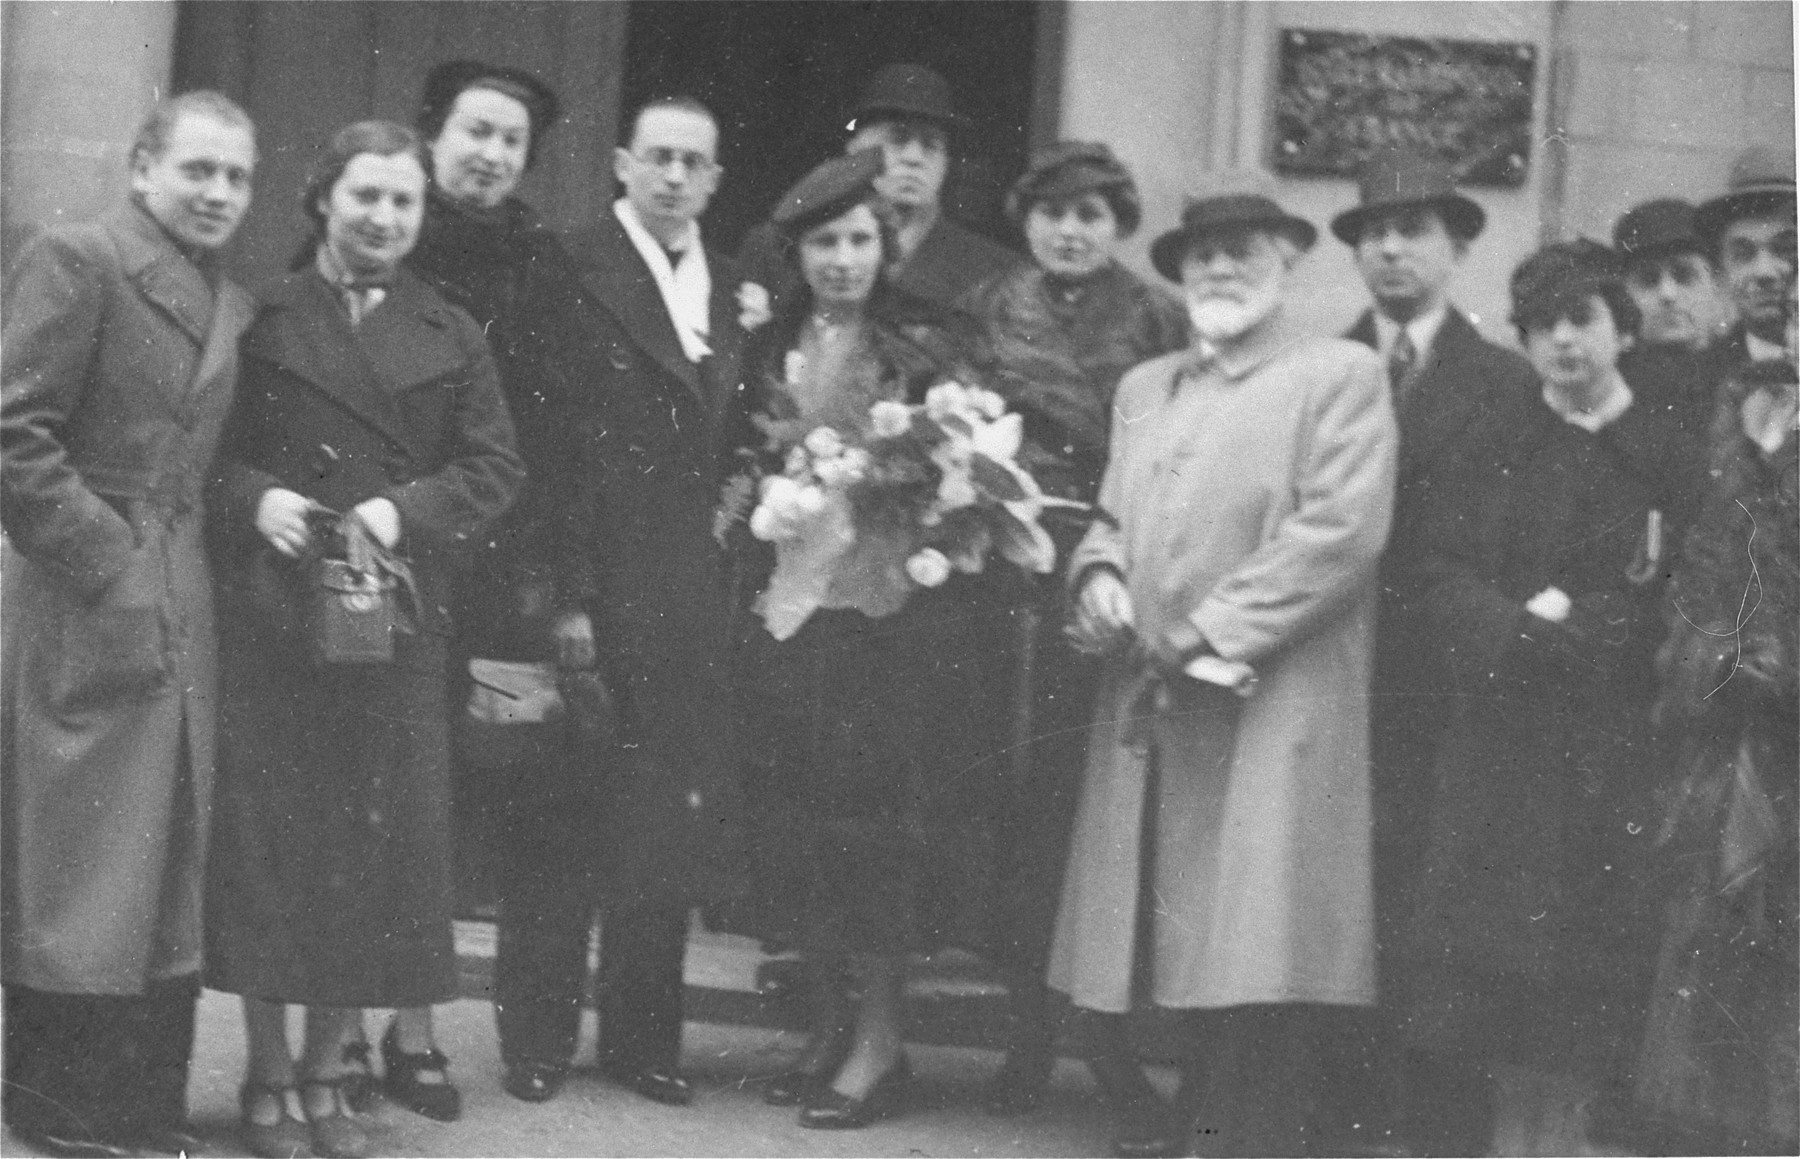 Wedding portrait of Raya Magid and Alexander Markon.   Among those pictured is the Jewish sculptor, Nahum Aronson (the bearded man on the right); the photographer Jacques Simpson (on the far left); the groom's sisters, Paula Markon Raizman and Olga Markon Baumgarten (to the left of the groom).  They all survived the war and immigrated to the U.S.  Also pictured are Luba Speiglass Fainas (behind the bride); and Sasha Fainas (next to Nahum Aronson).  Both survived the war in hiding in Lyons.